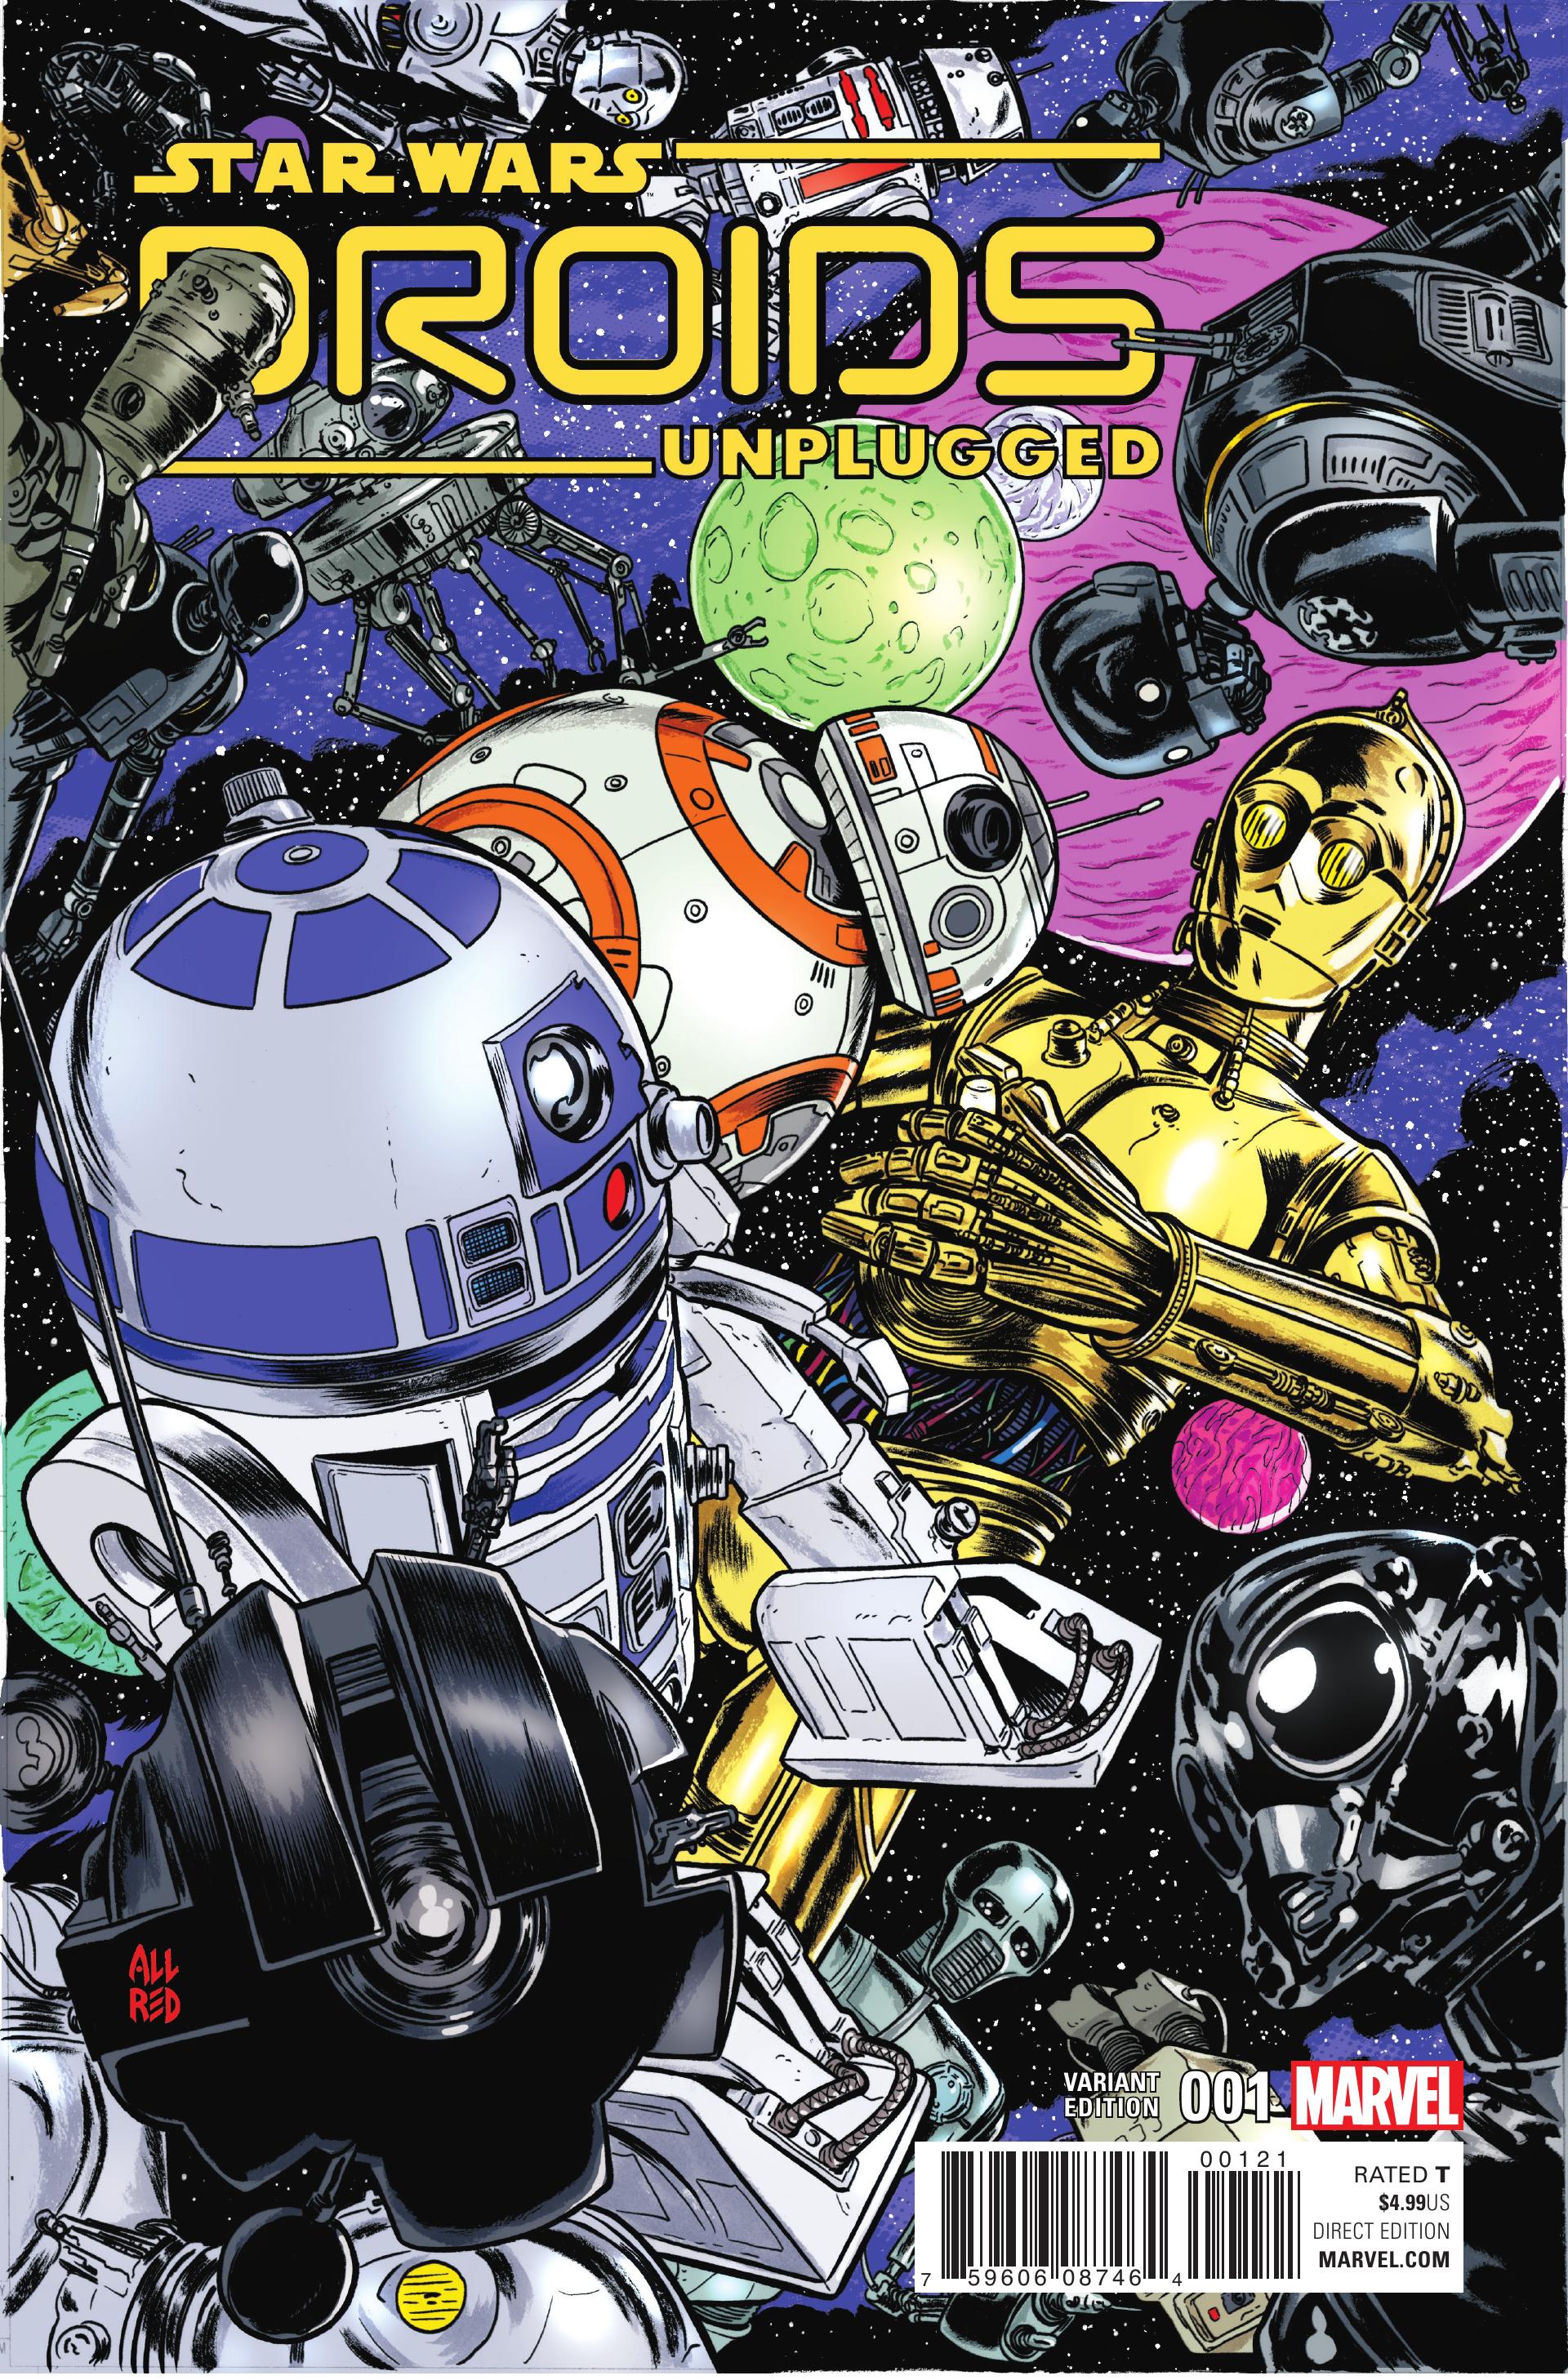 Droids-Unplugged-Allred.jpg